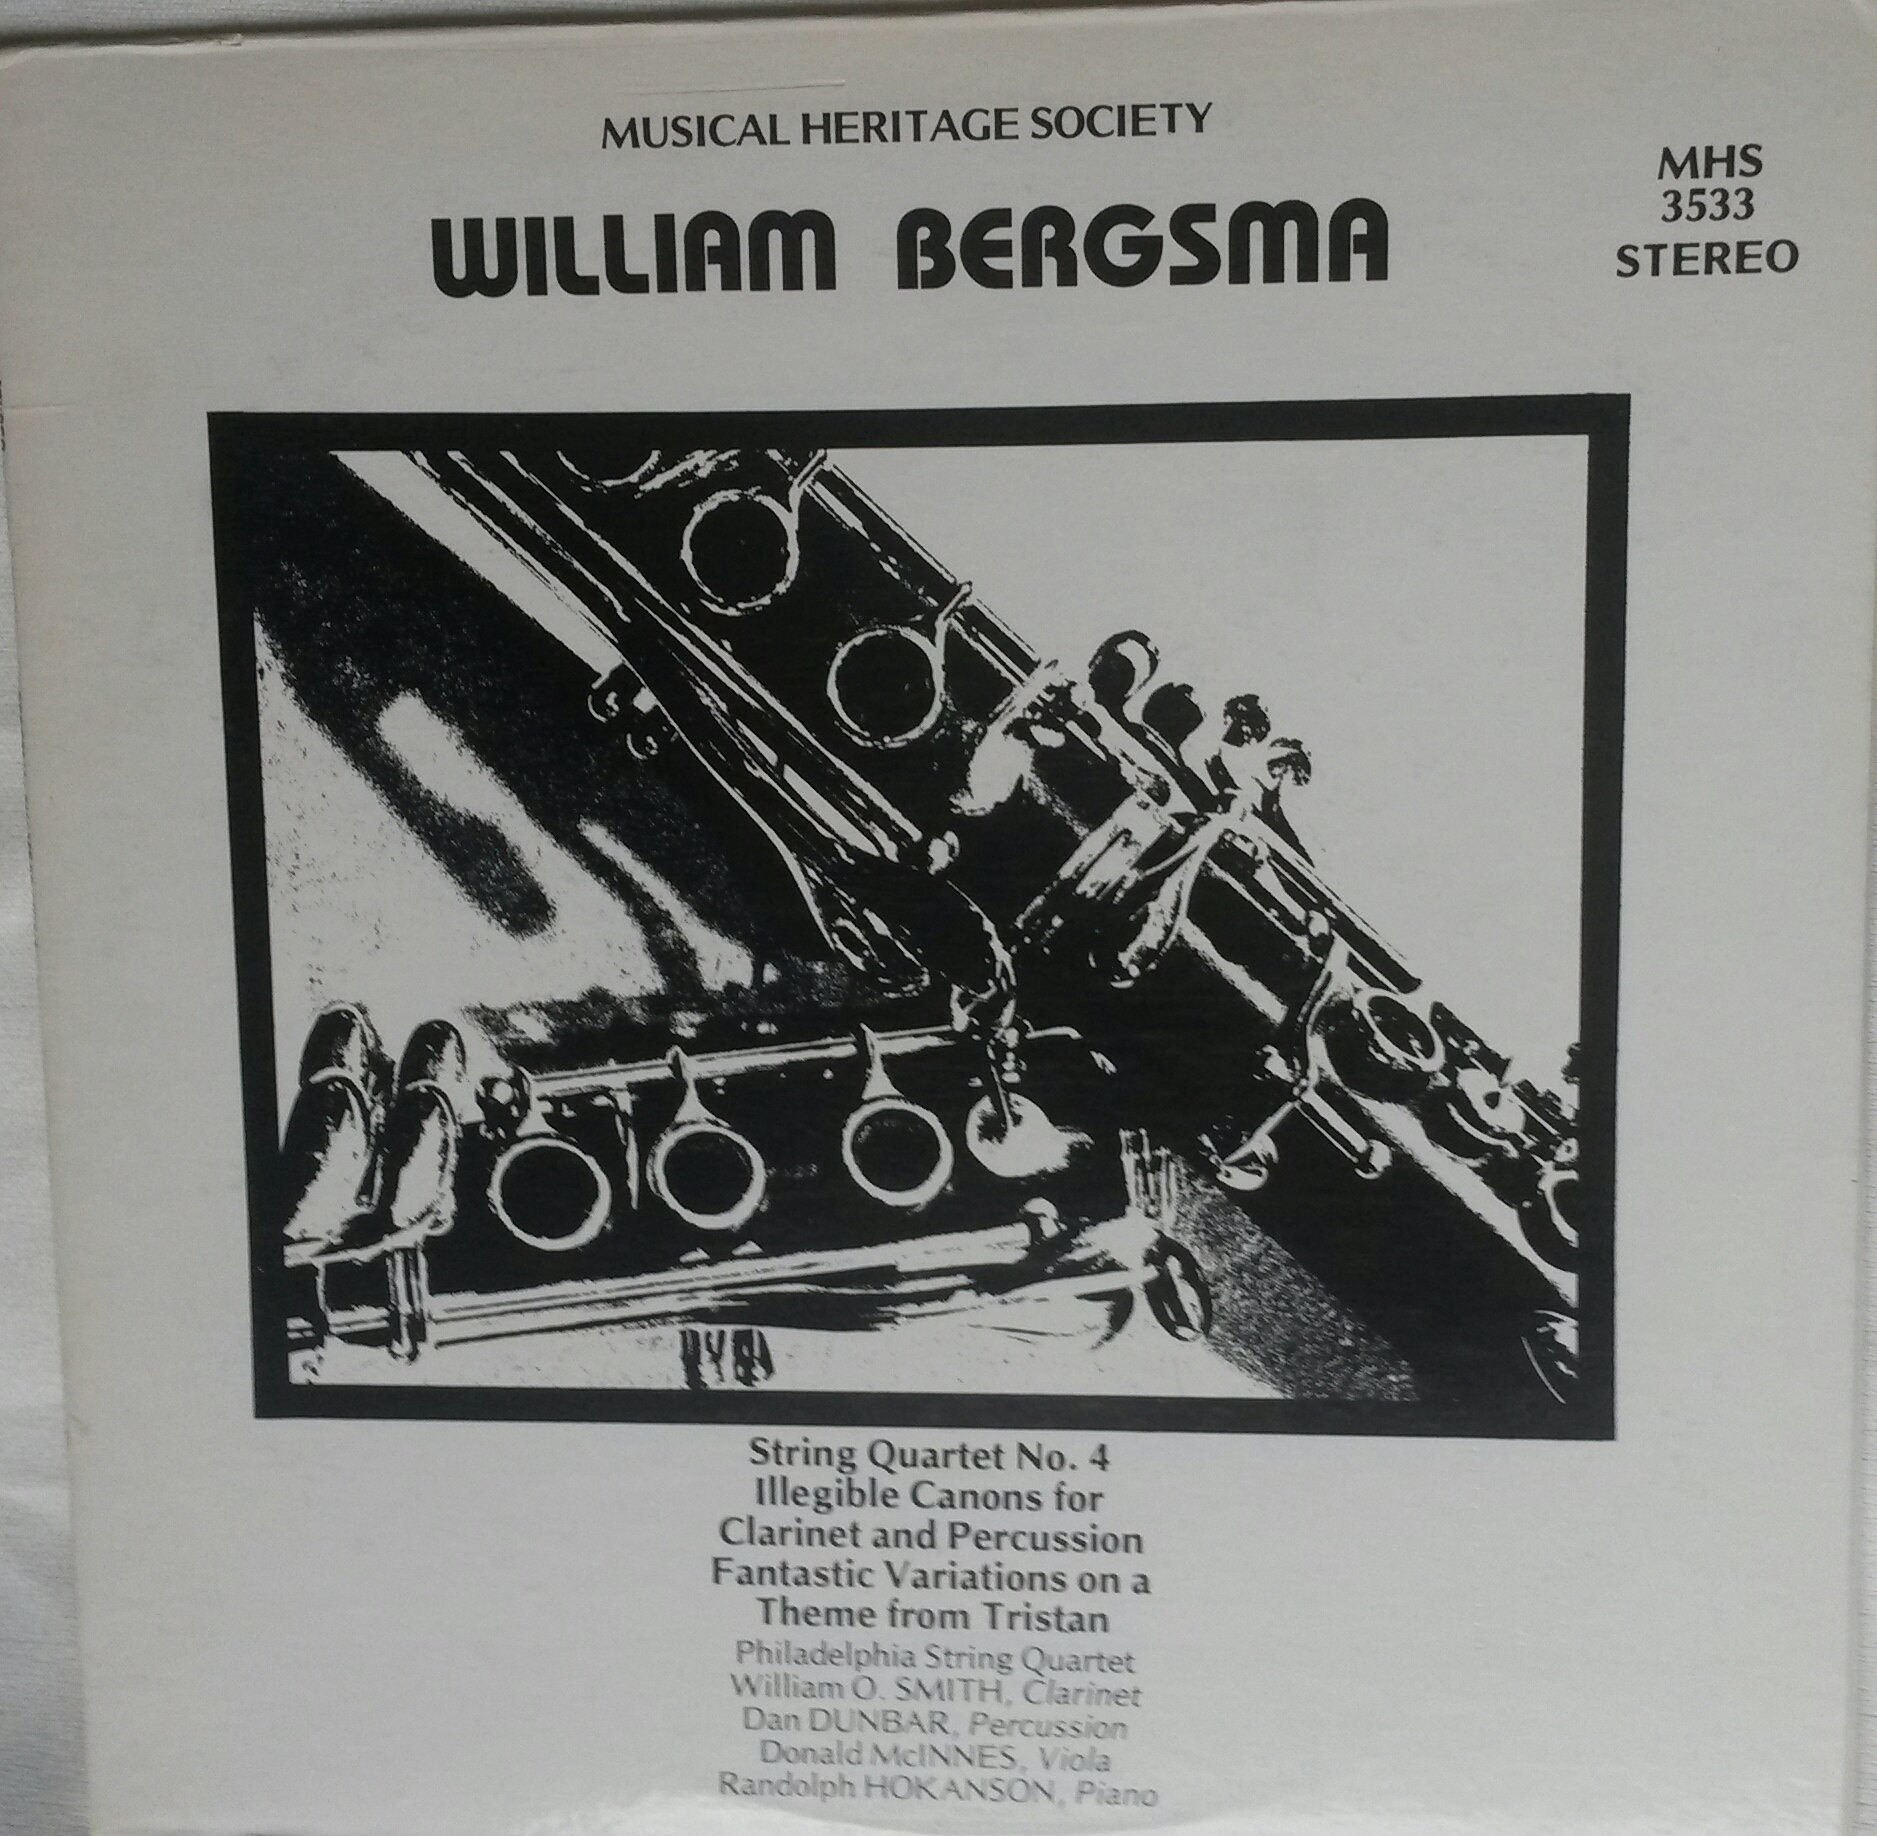 William Bergsma: String Quartet No. 4/ Illegible Canons for Clarinet and Percussion/ Fantastic Variations/ Theme from Tristan